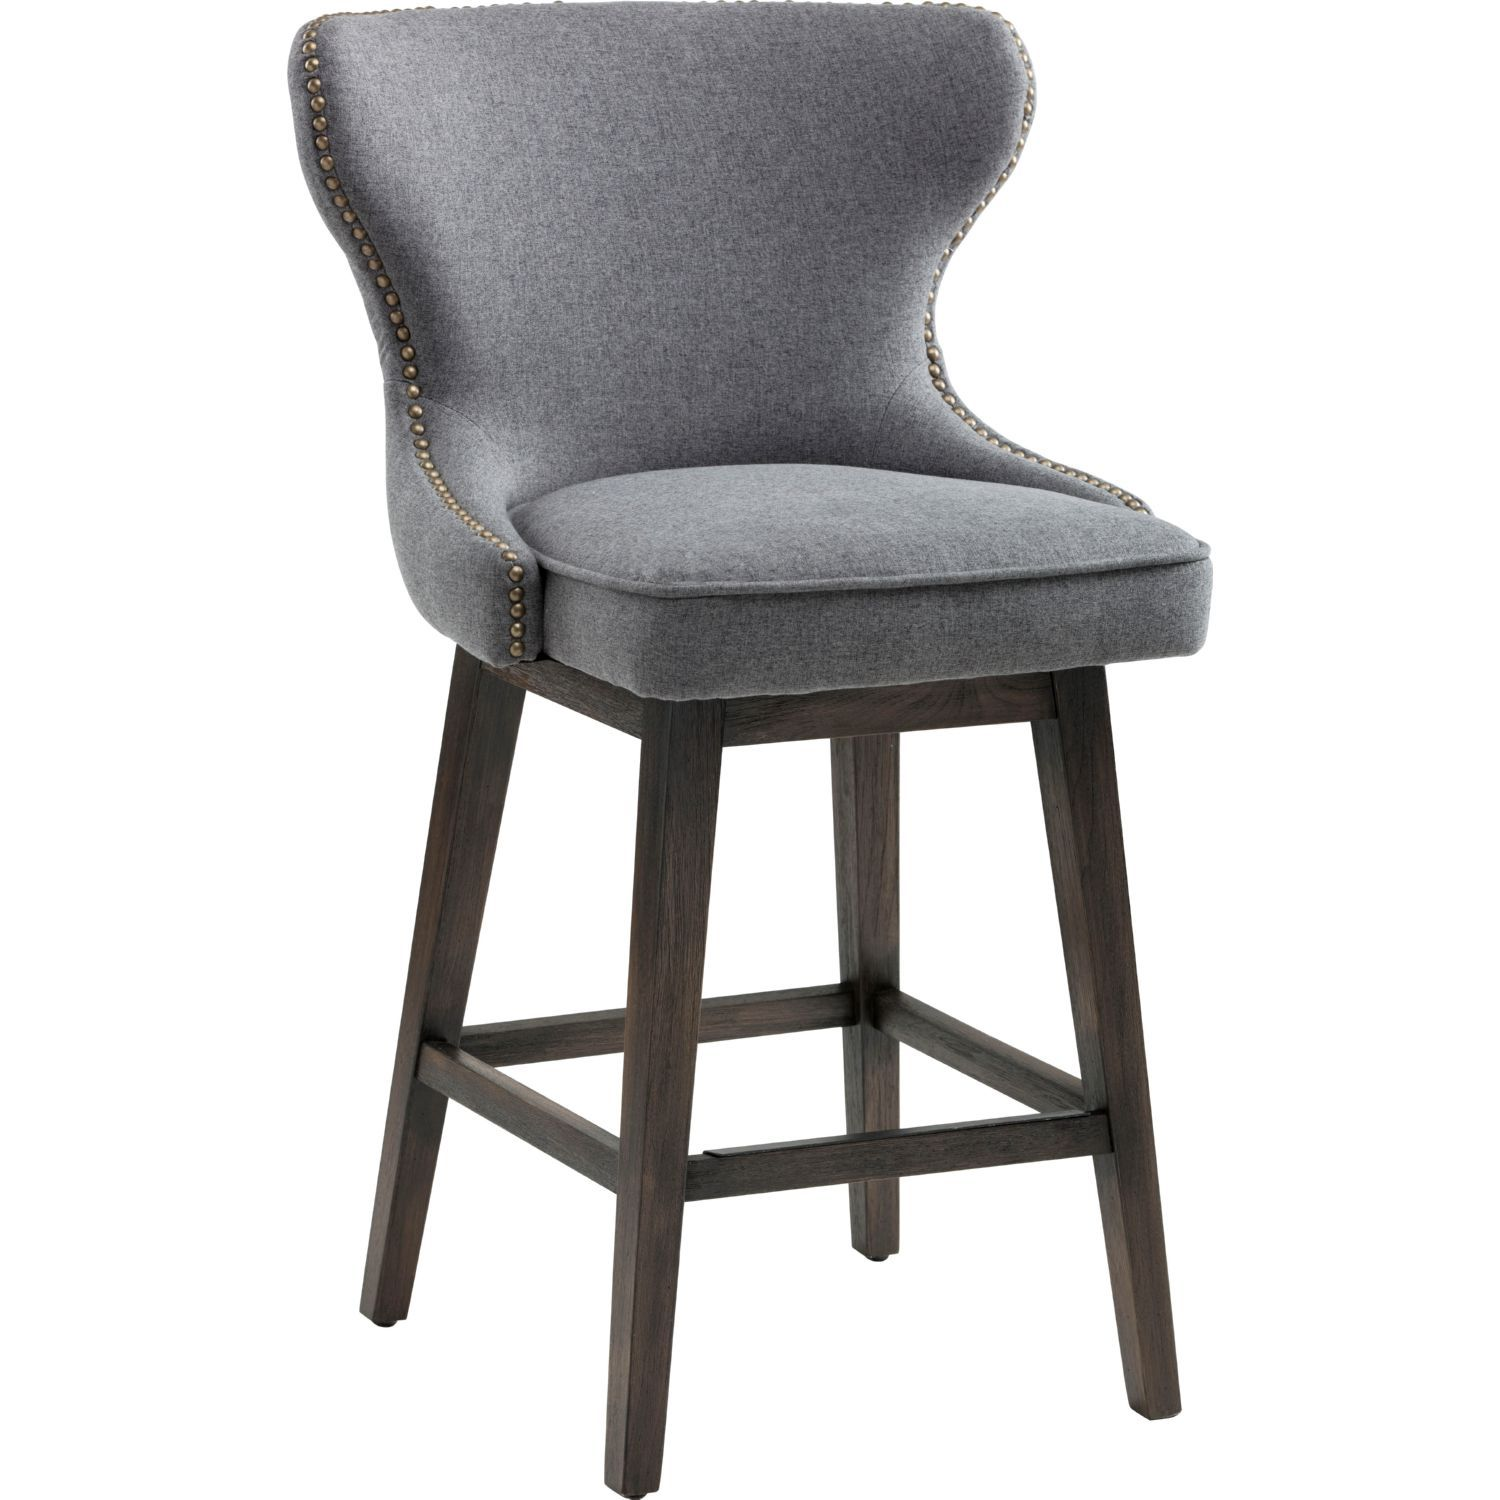 Stupendous Black Wood Bar Stool Barhocker Barhocker Holz Barstuhle Pabps2019 Chair Design Images Pabps2019Com